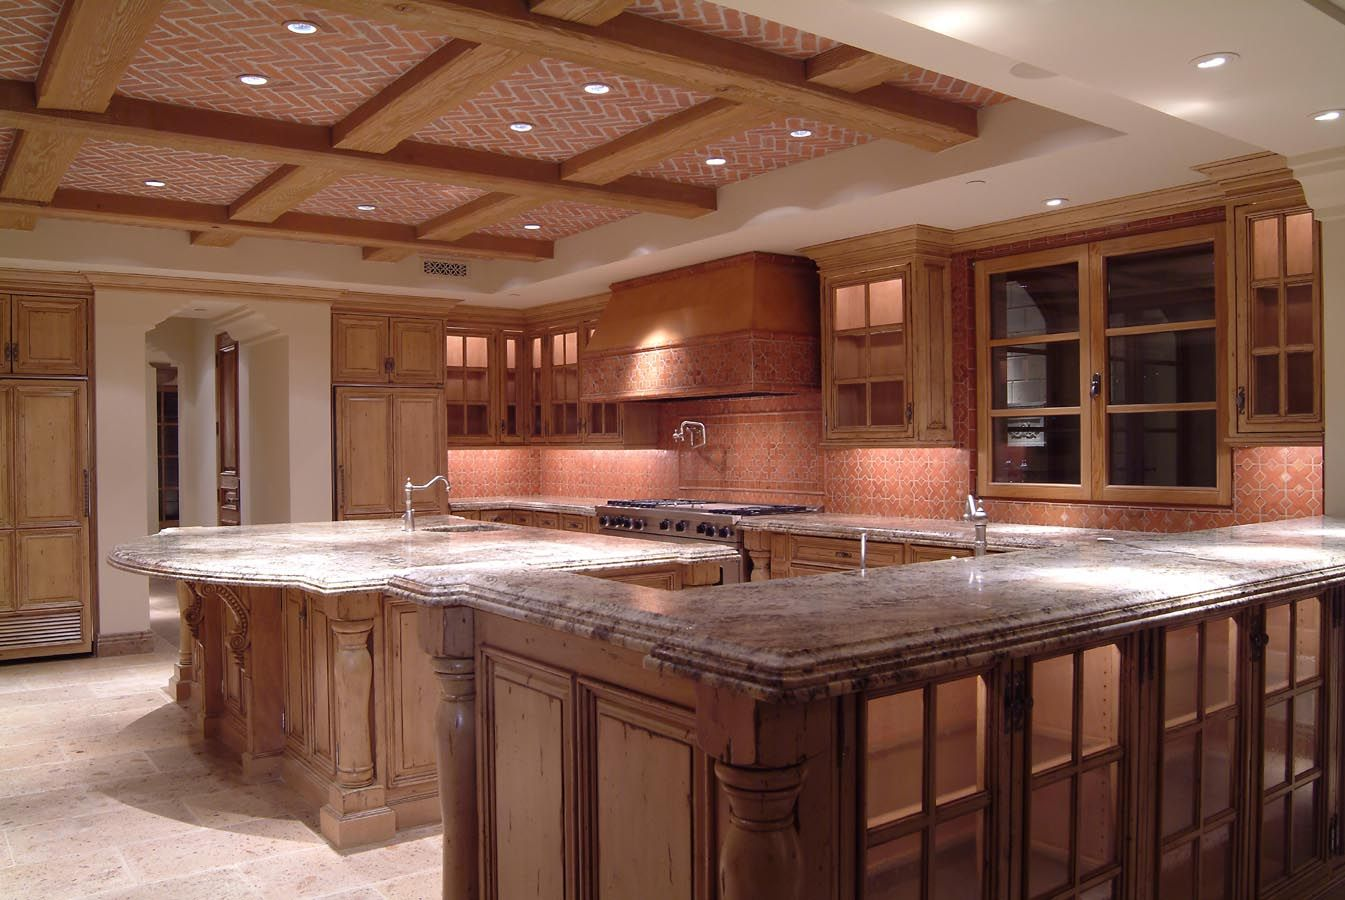 Ultra High End Custom Kitchen Cabinetry High End Cabinetry By All Wood Treasures Kitchen Cabinets On A Budget Custom Kitchen Cabinets Kitchen Cabinets Brands